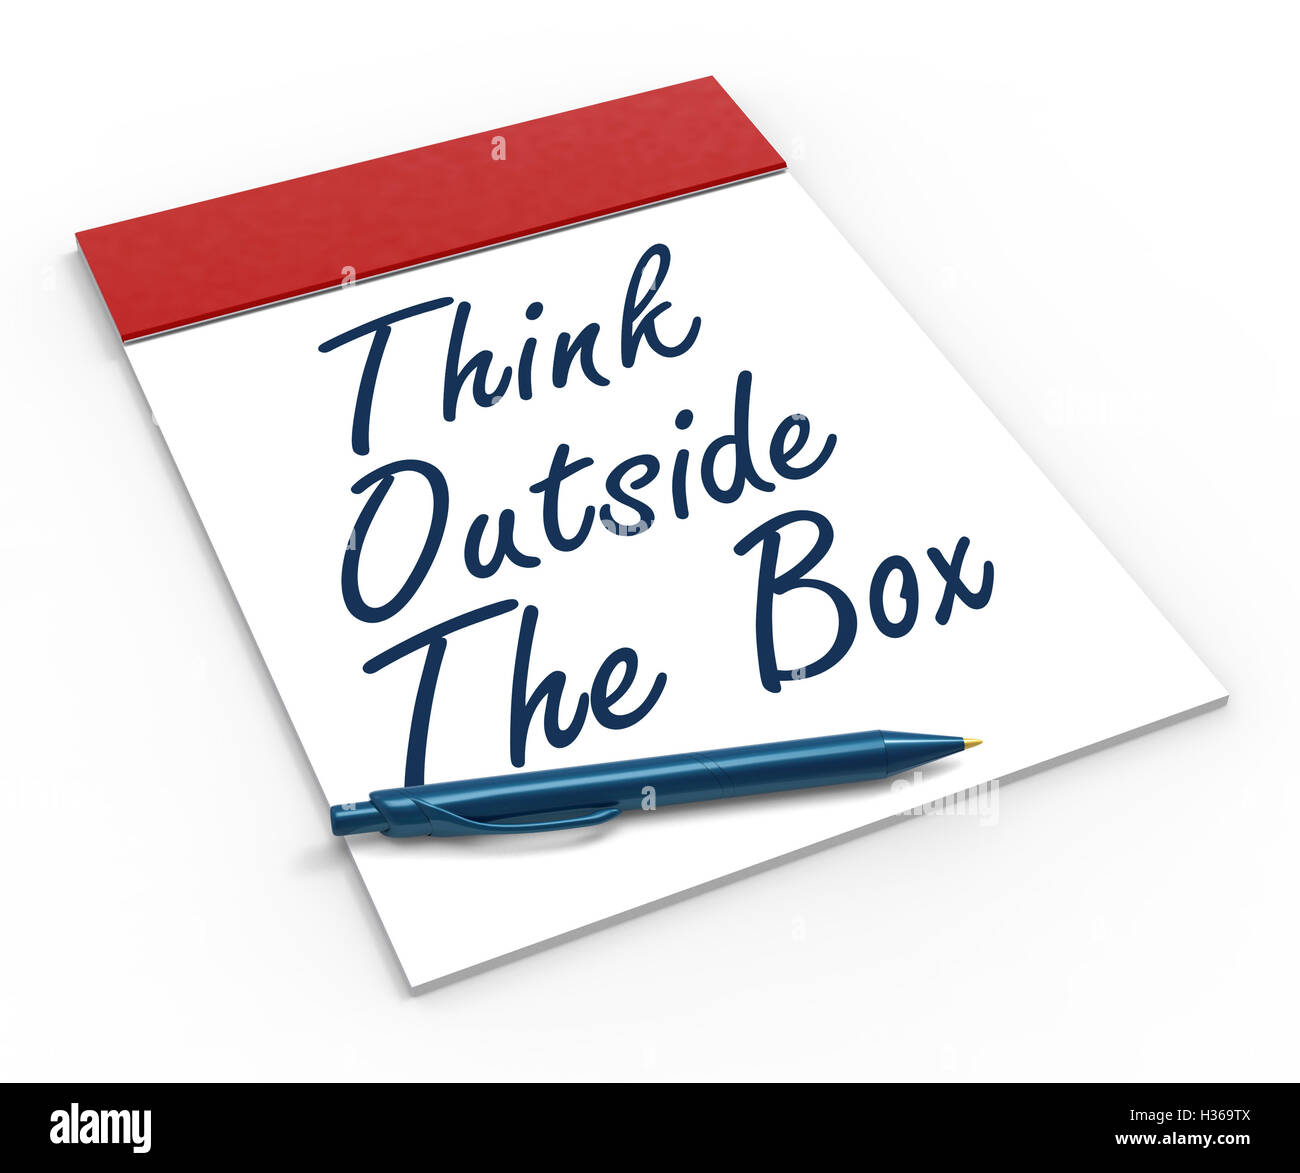 Think Outside The Box Notebook Means Creativity Or